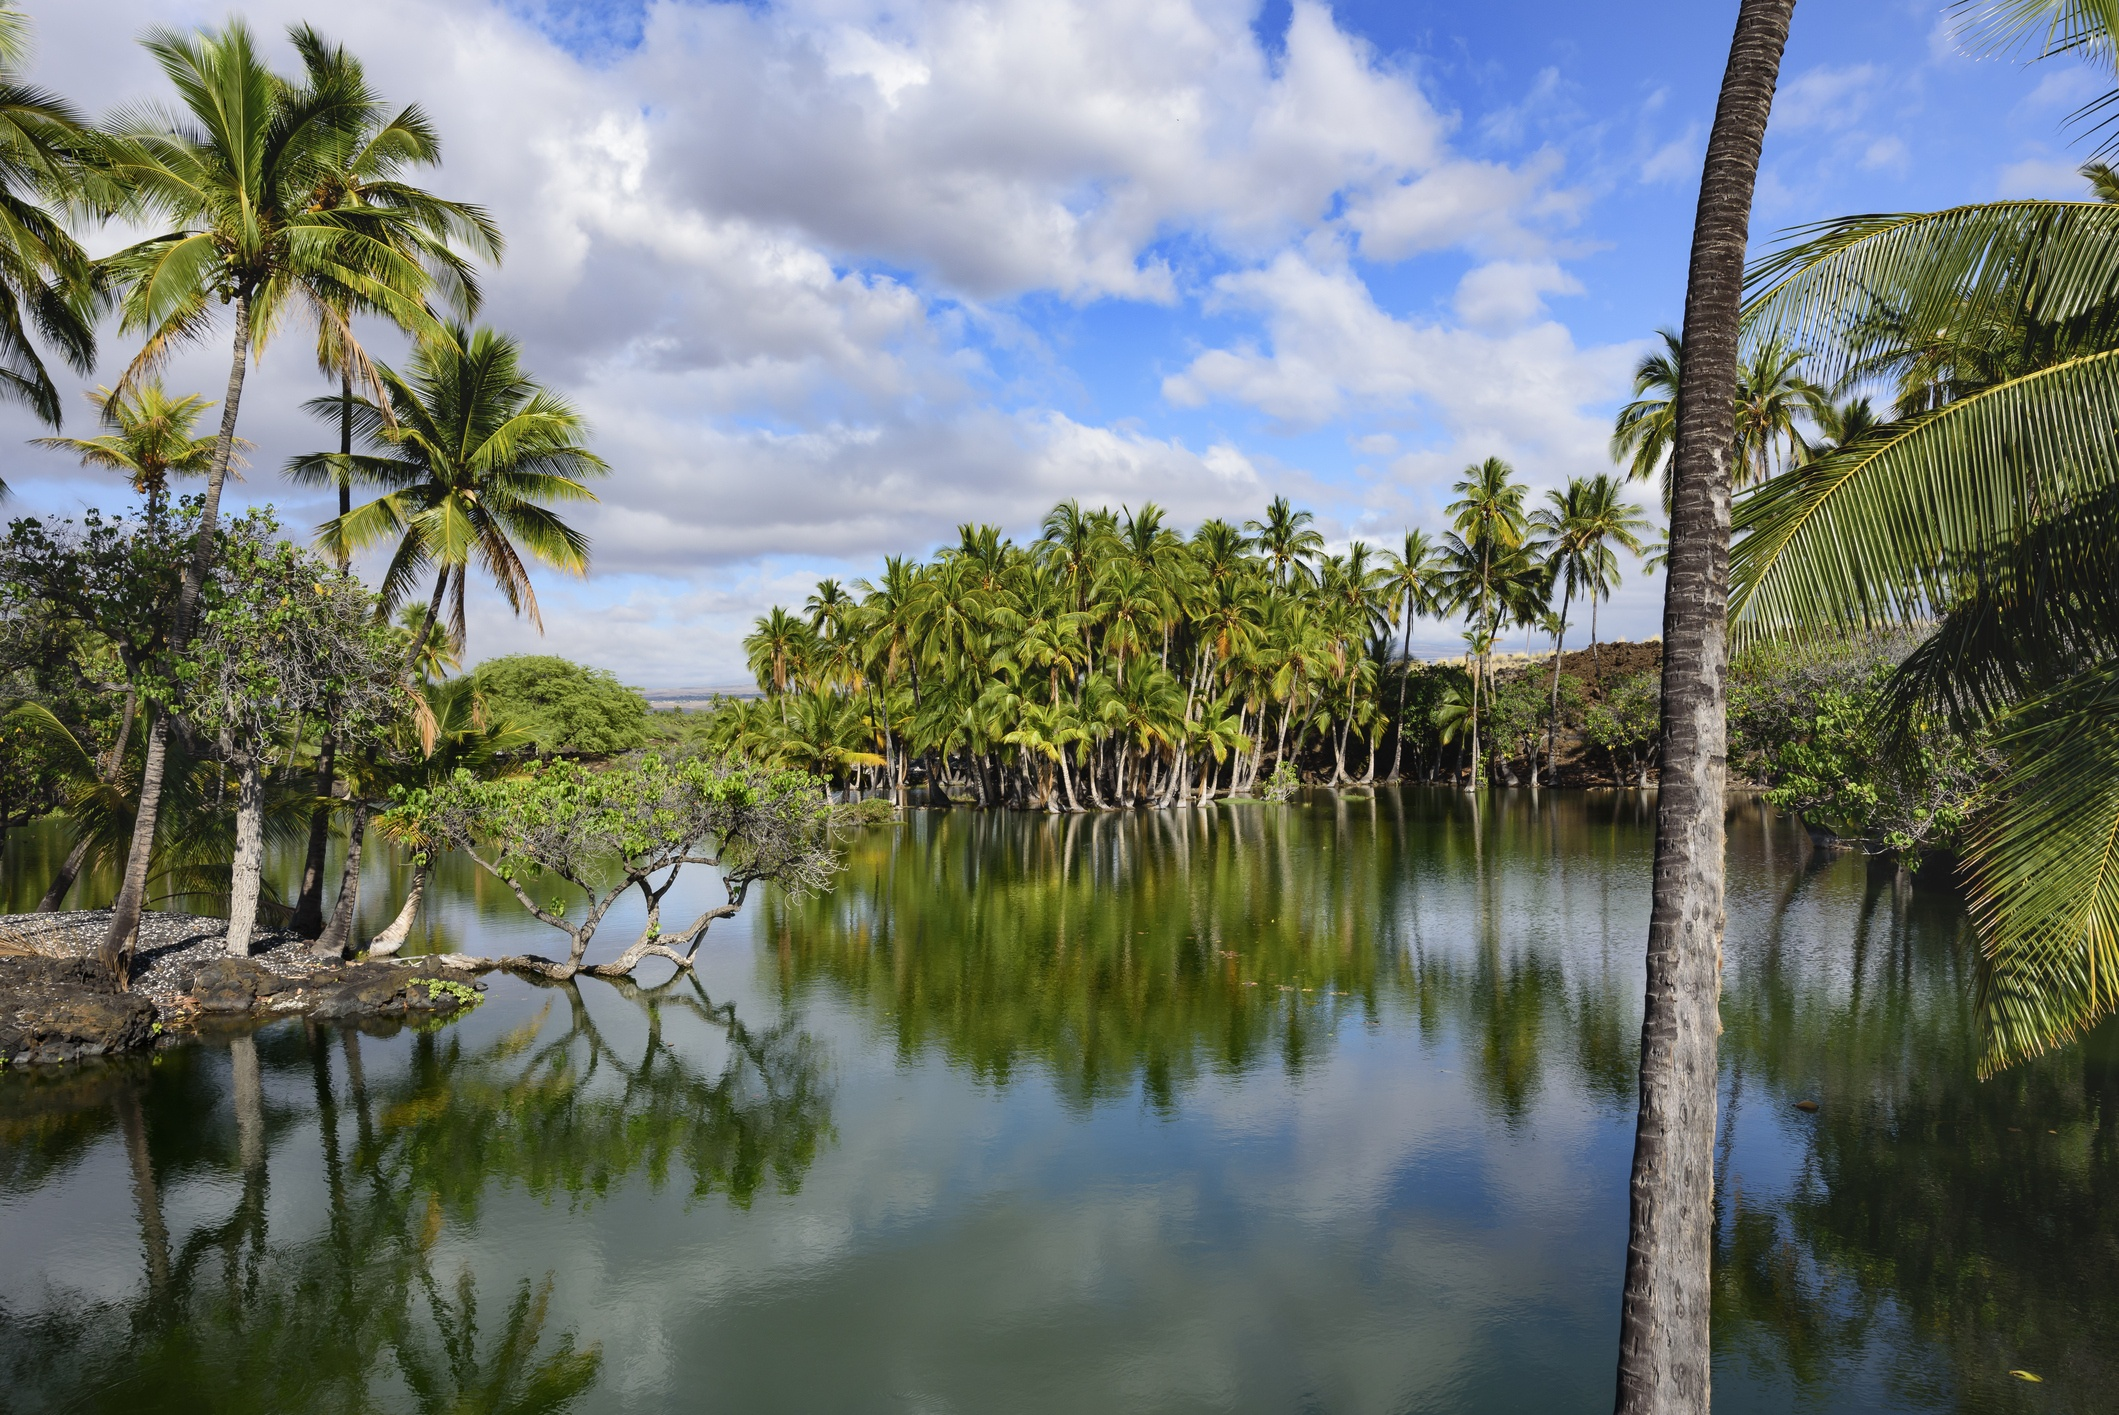 A group of palms lying on pond banks